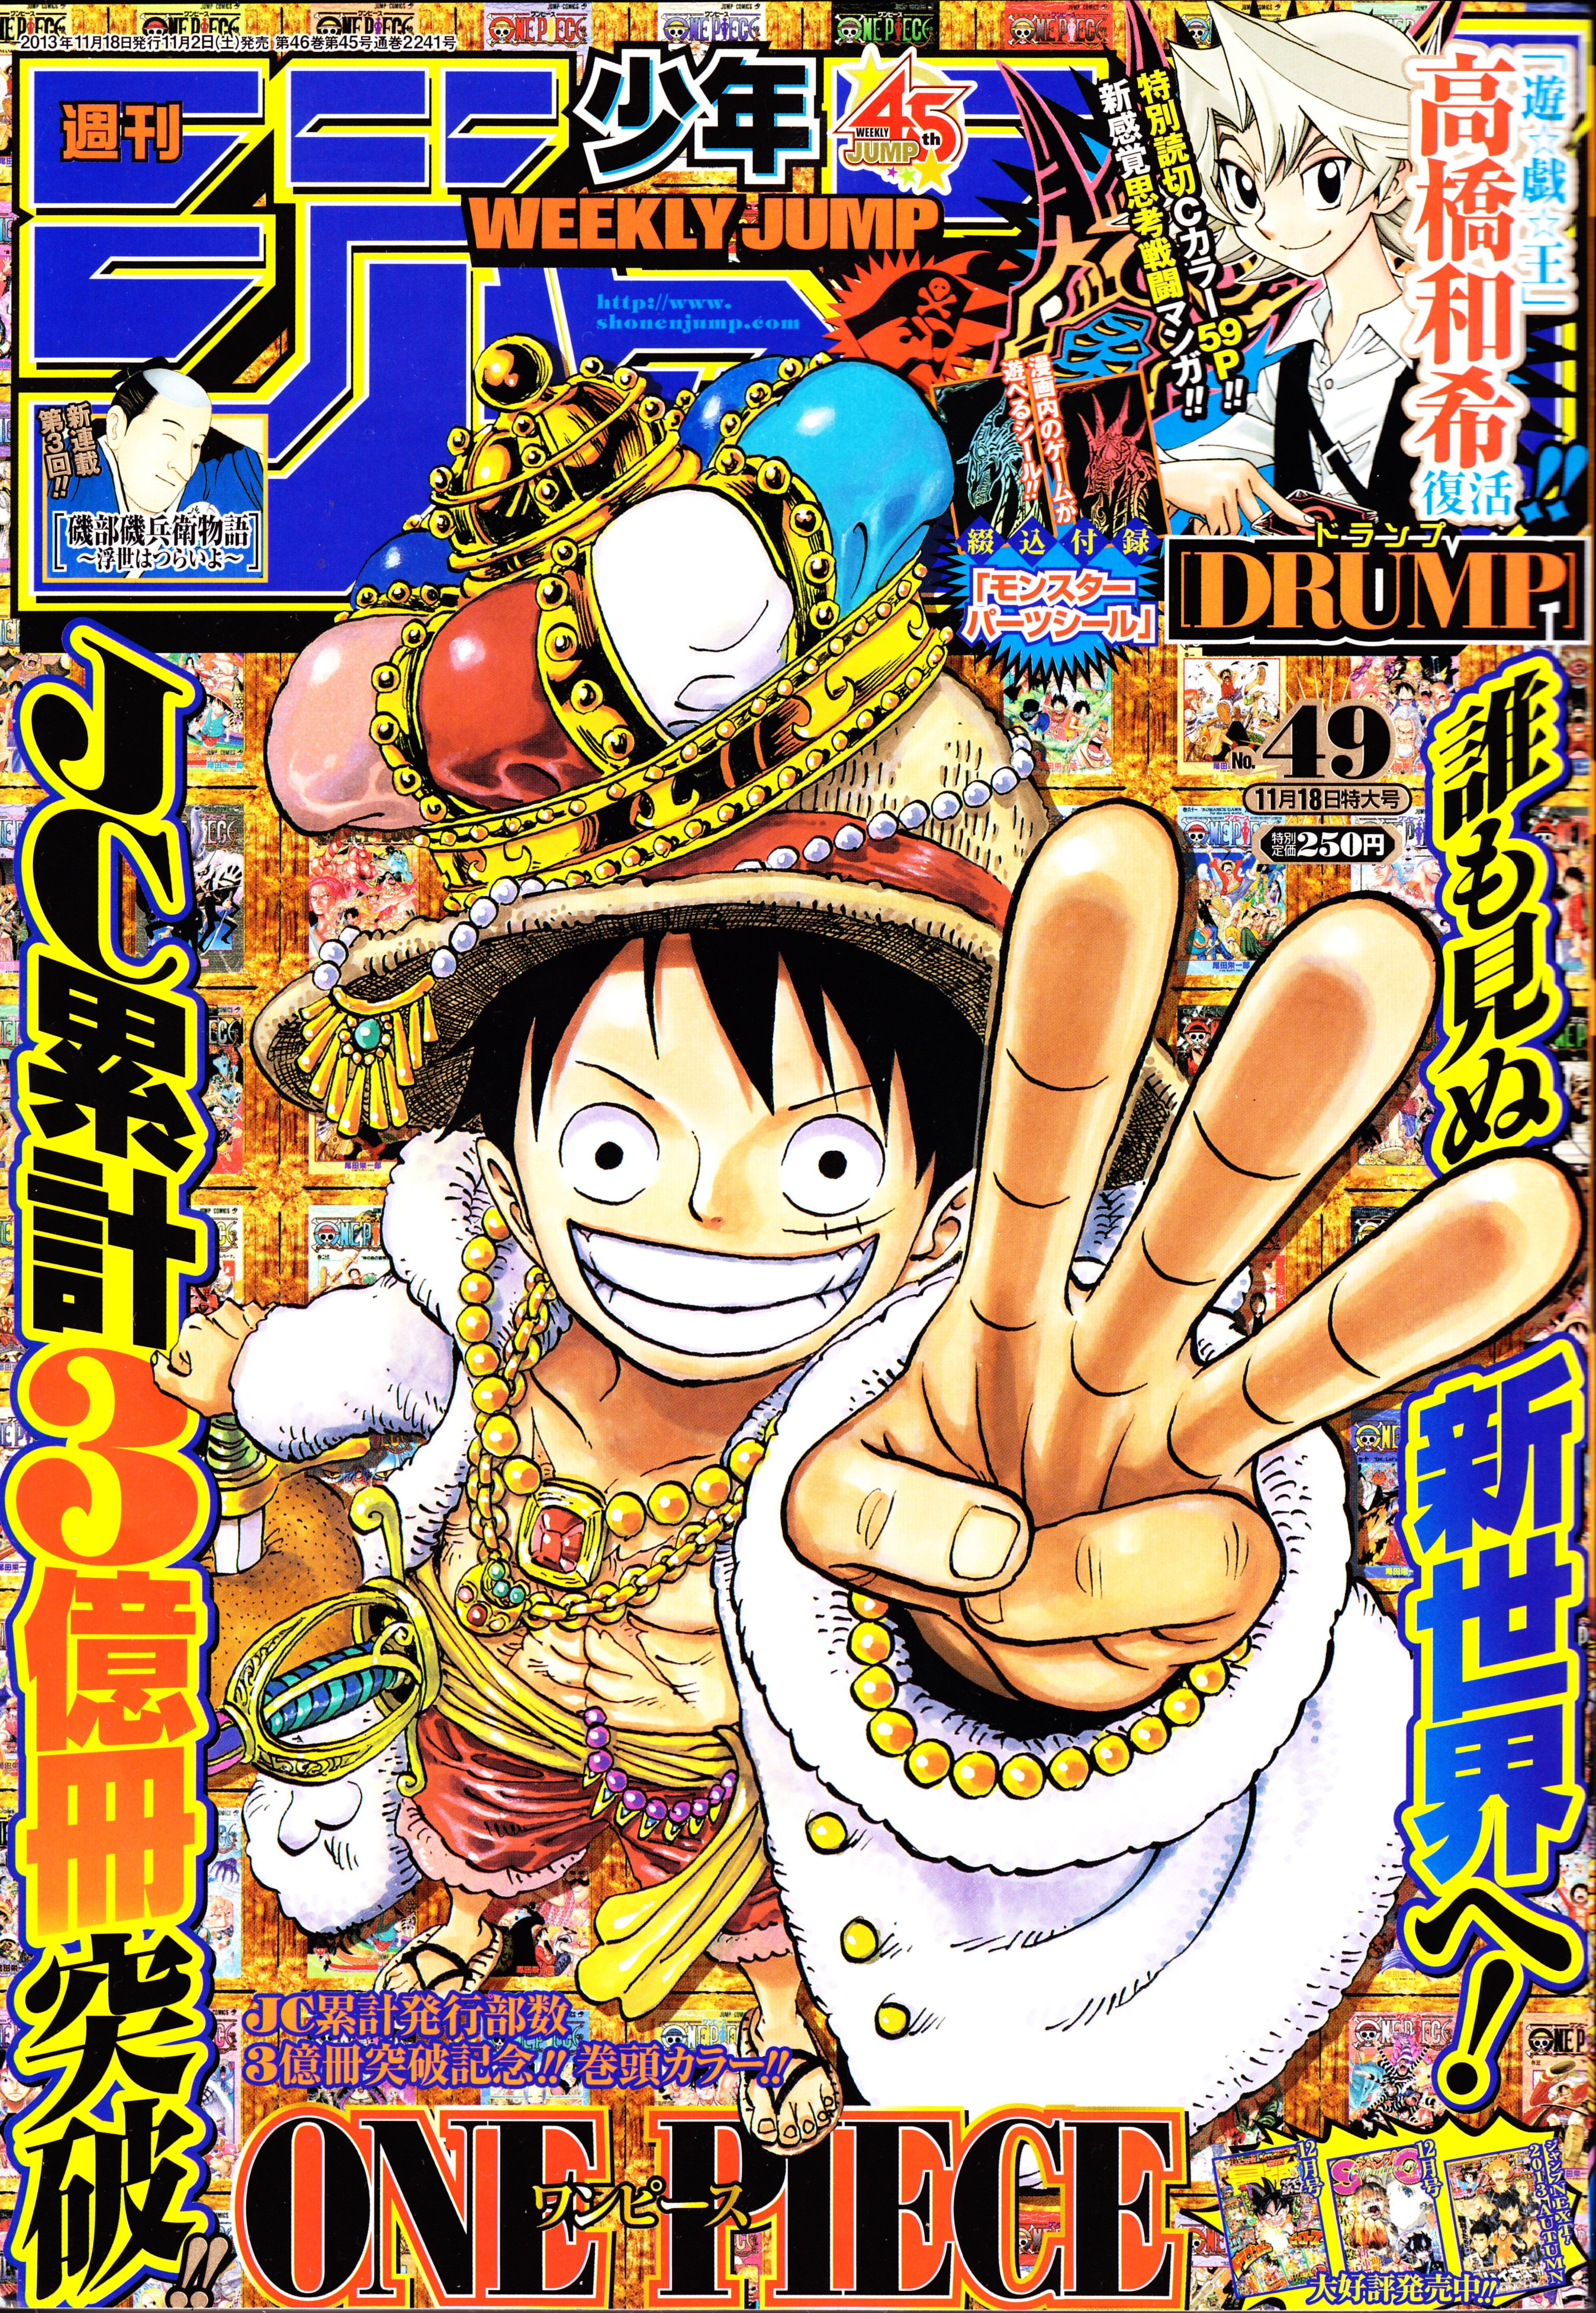 Download One Piece Shonen Jump Cover (4208x6098) One